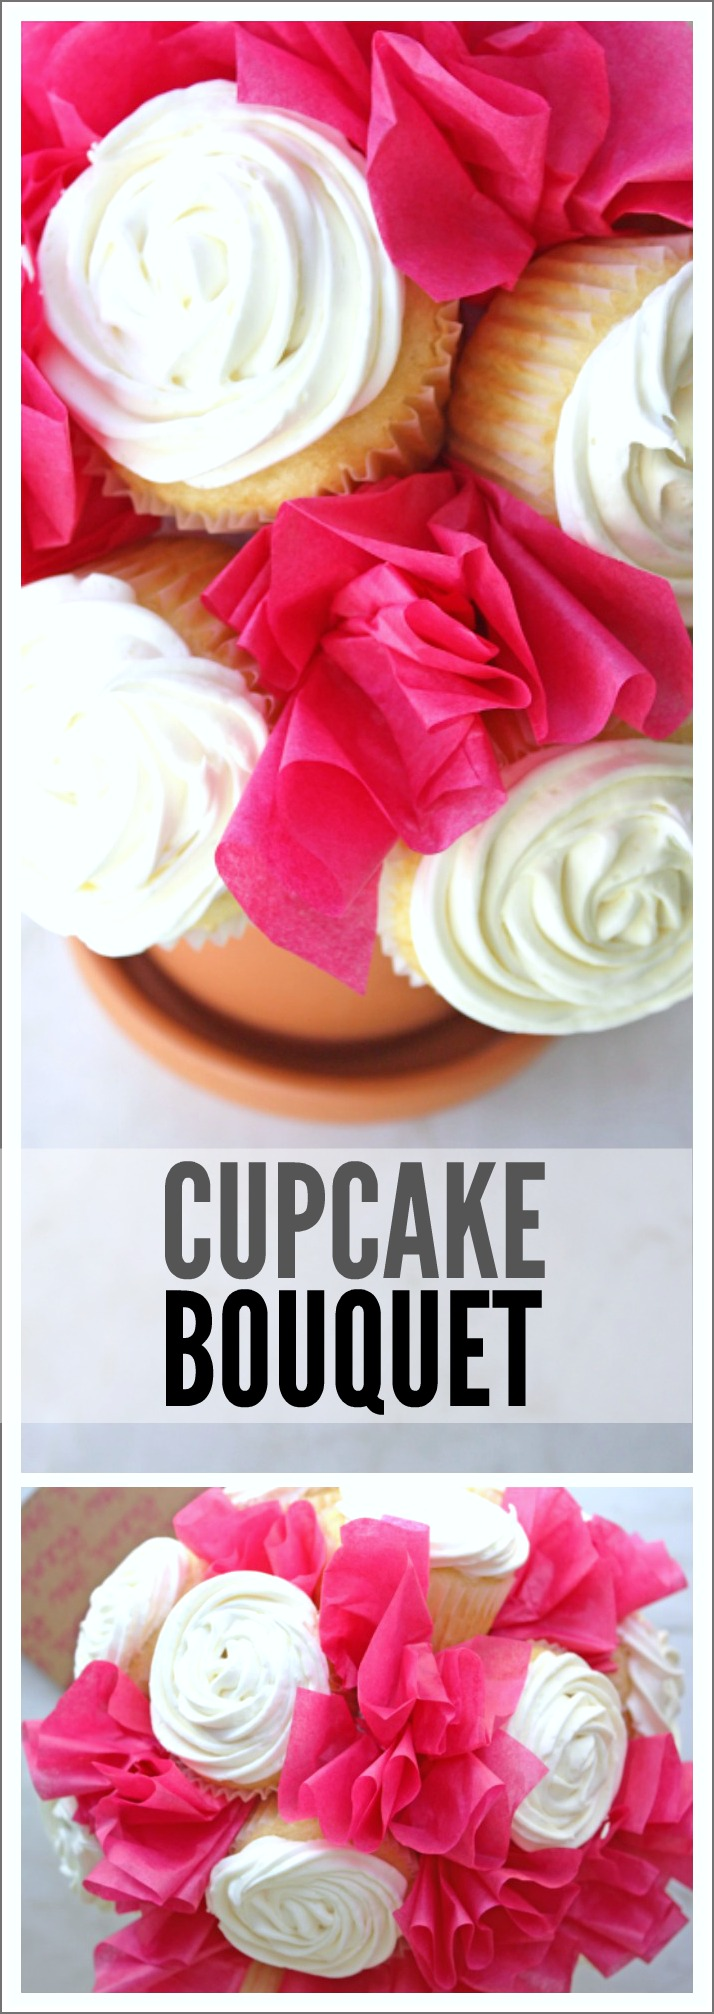 Cupcake Bouquet Diy Catch My Party